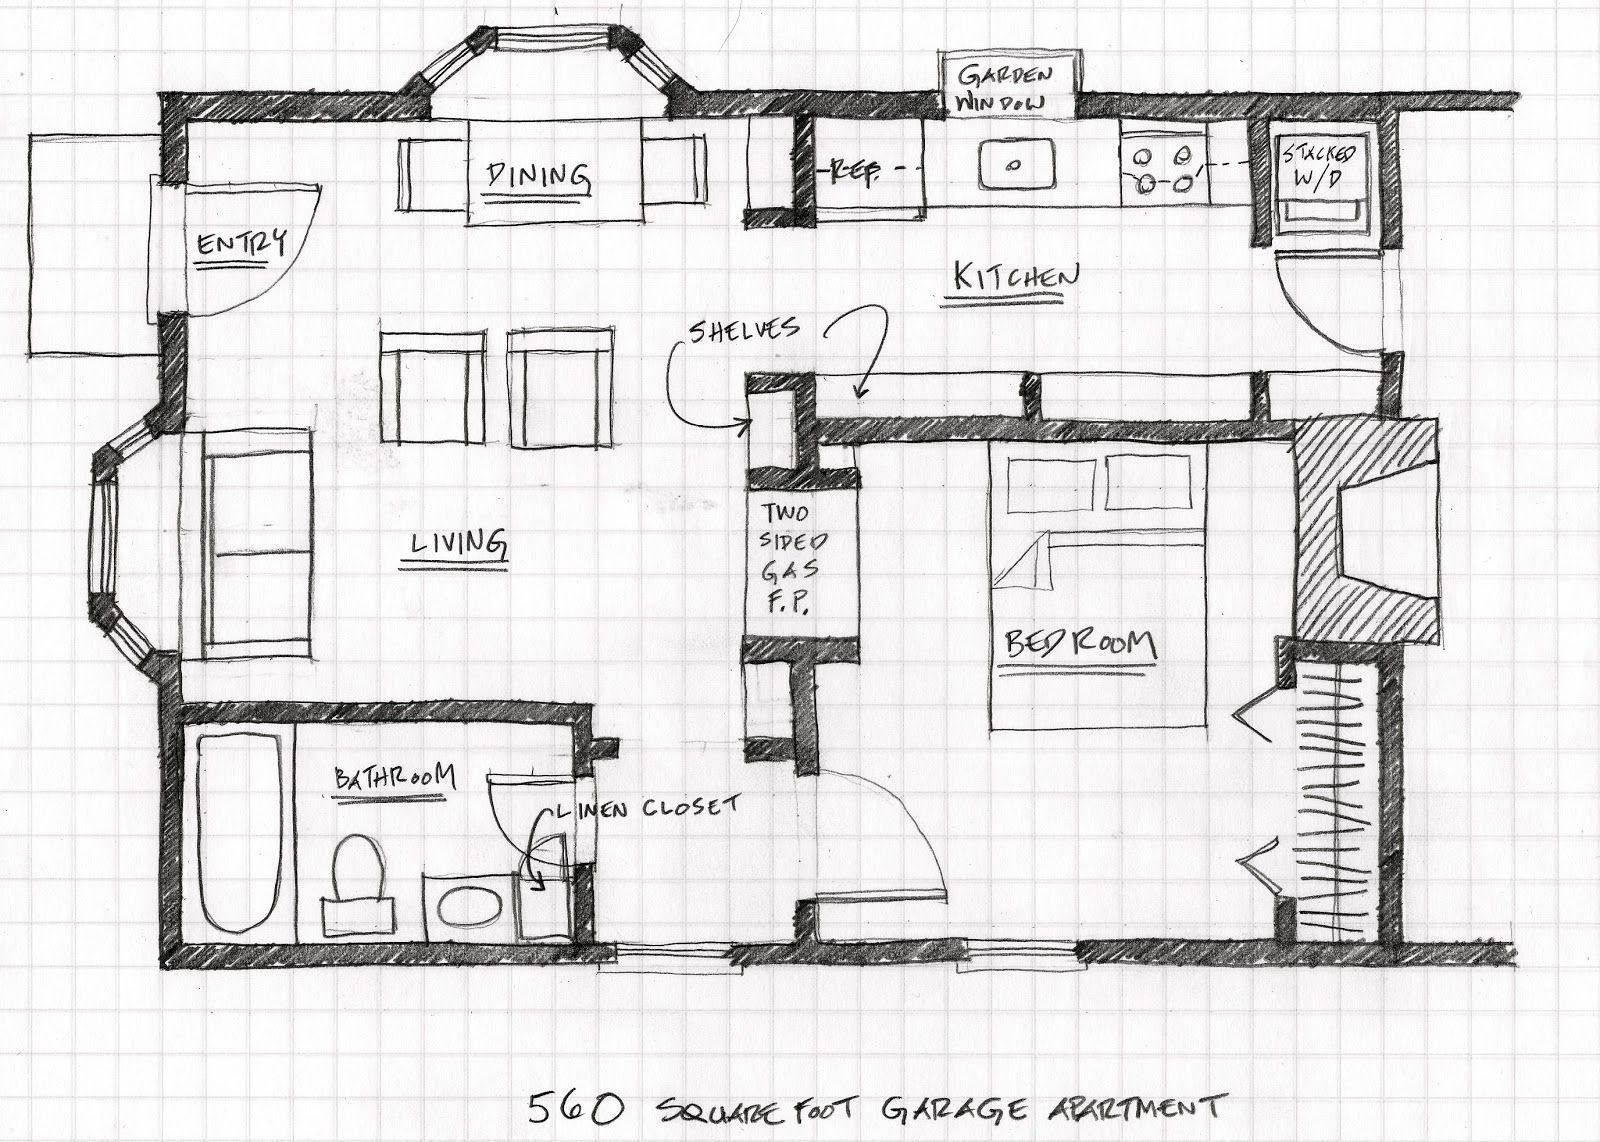 Small scale homes floor plans for garage to apartment Small home plans with garage